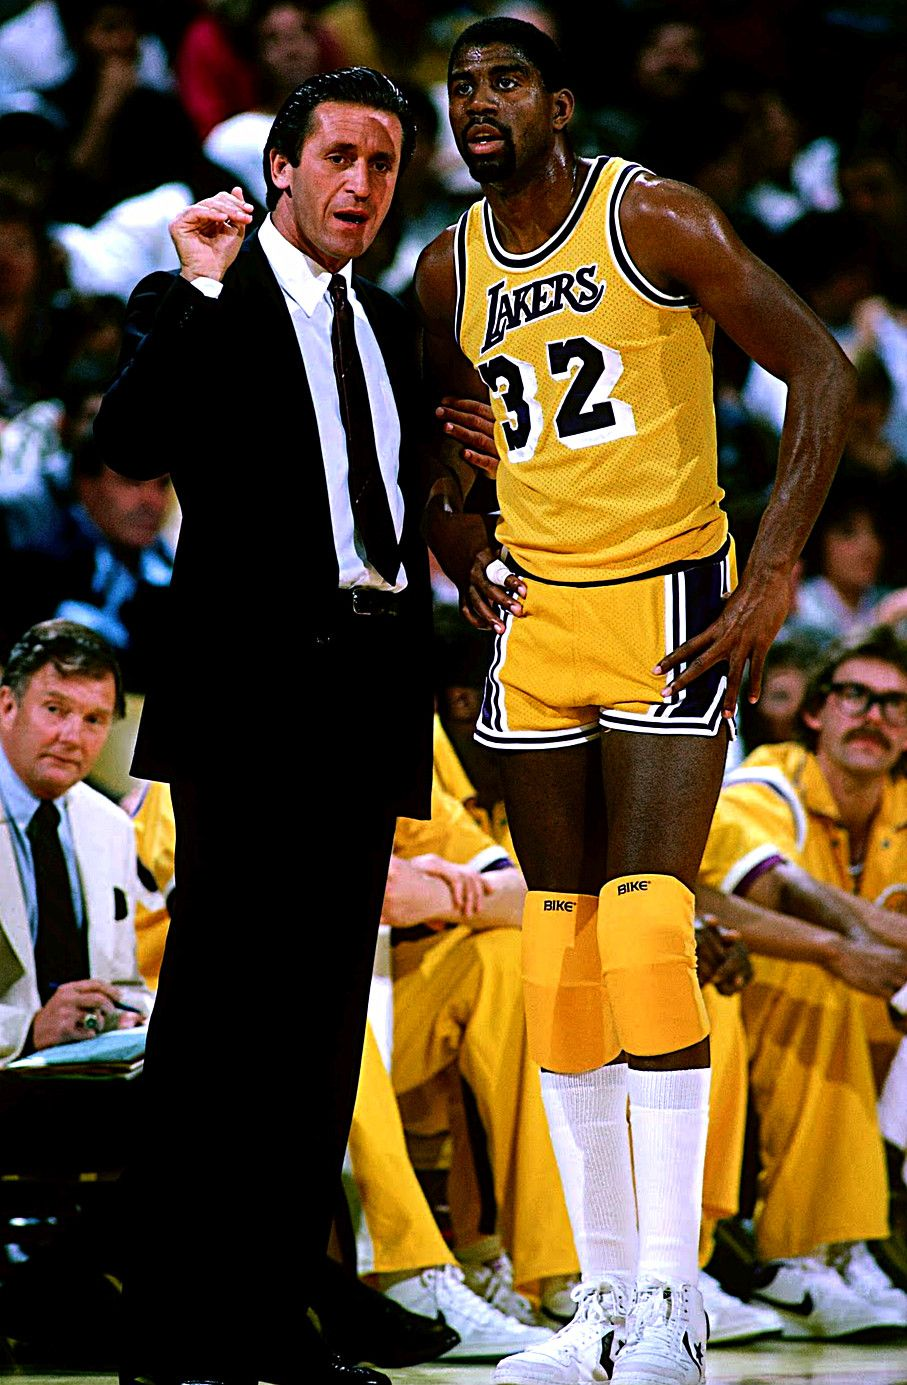 baa9848cf Pat Riley   Magic Johnson - (The Beginning of a remarkable championship  run....)  adecadeofexcellence